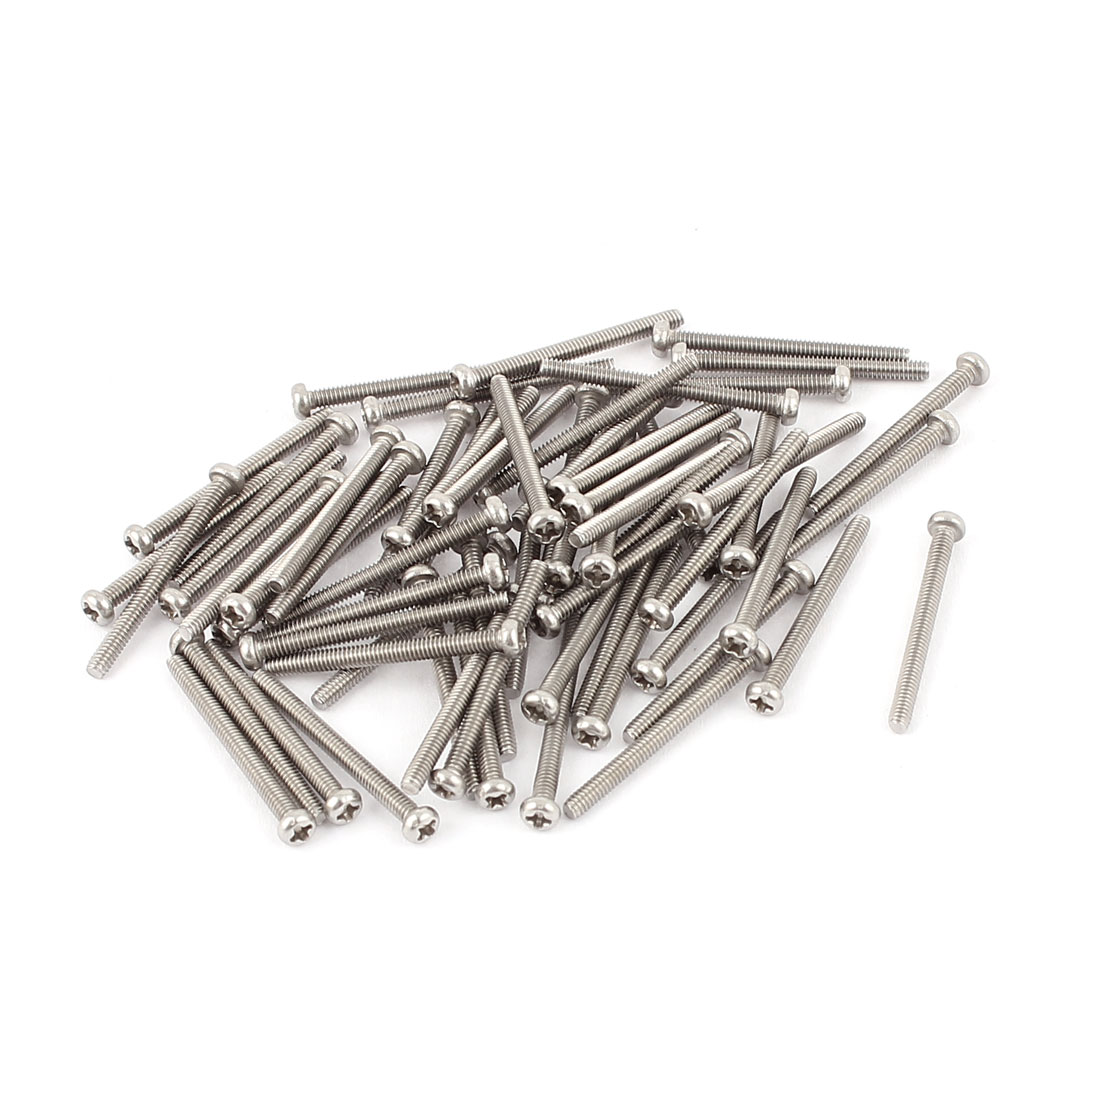 M2 x 22mm 304 Stainless Steel Crosshead Phillips Round Head Screws Bolt 60pcs